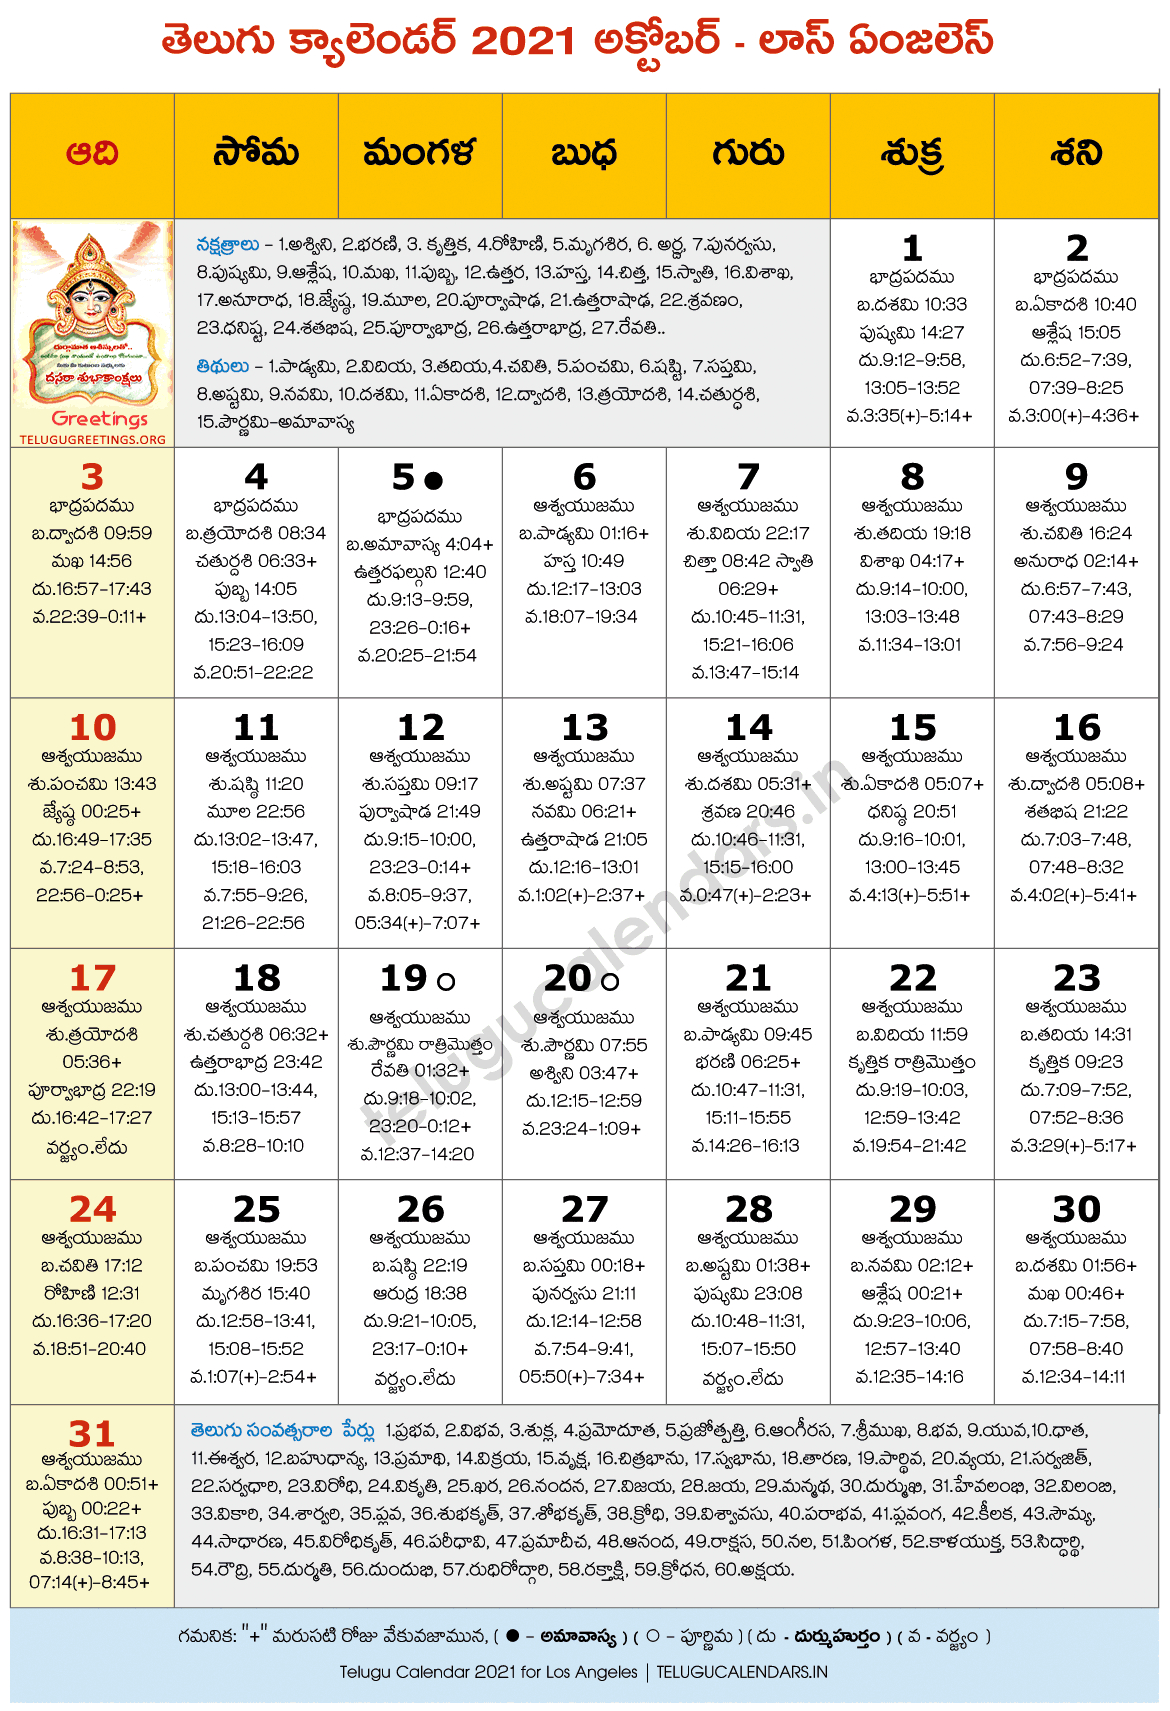 Los Angeles 2021 October Telugu Calendar | Telugu Calendars